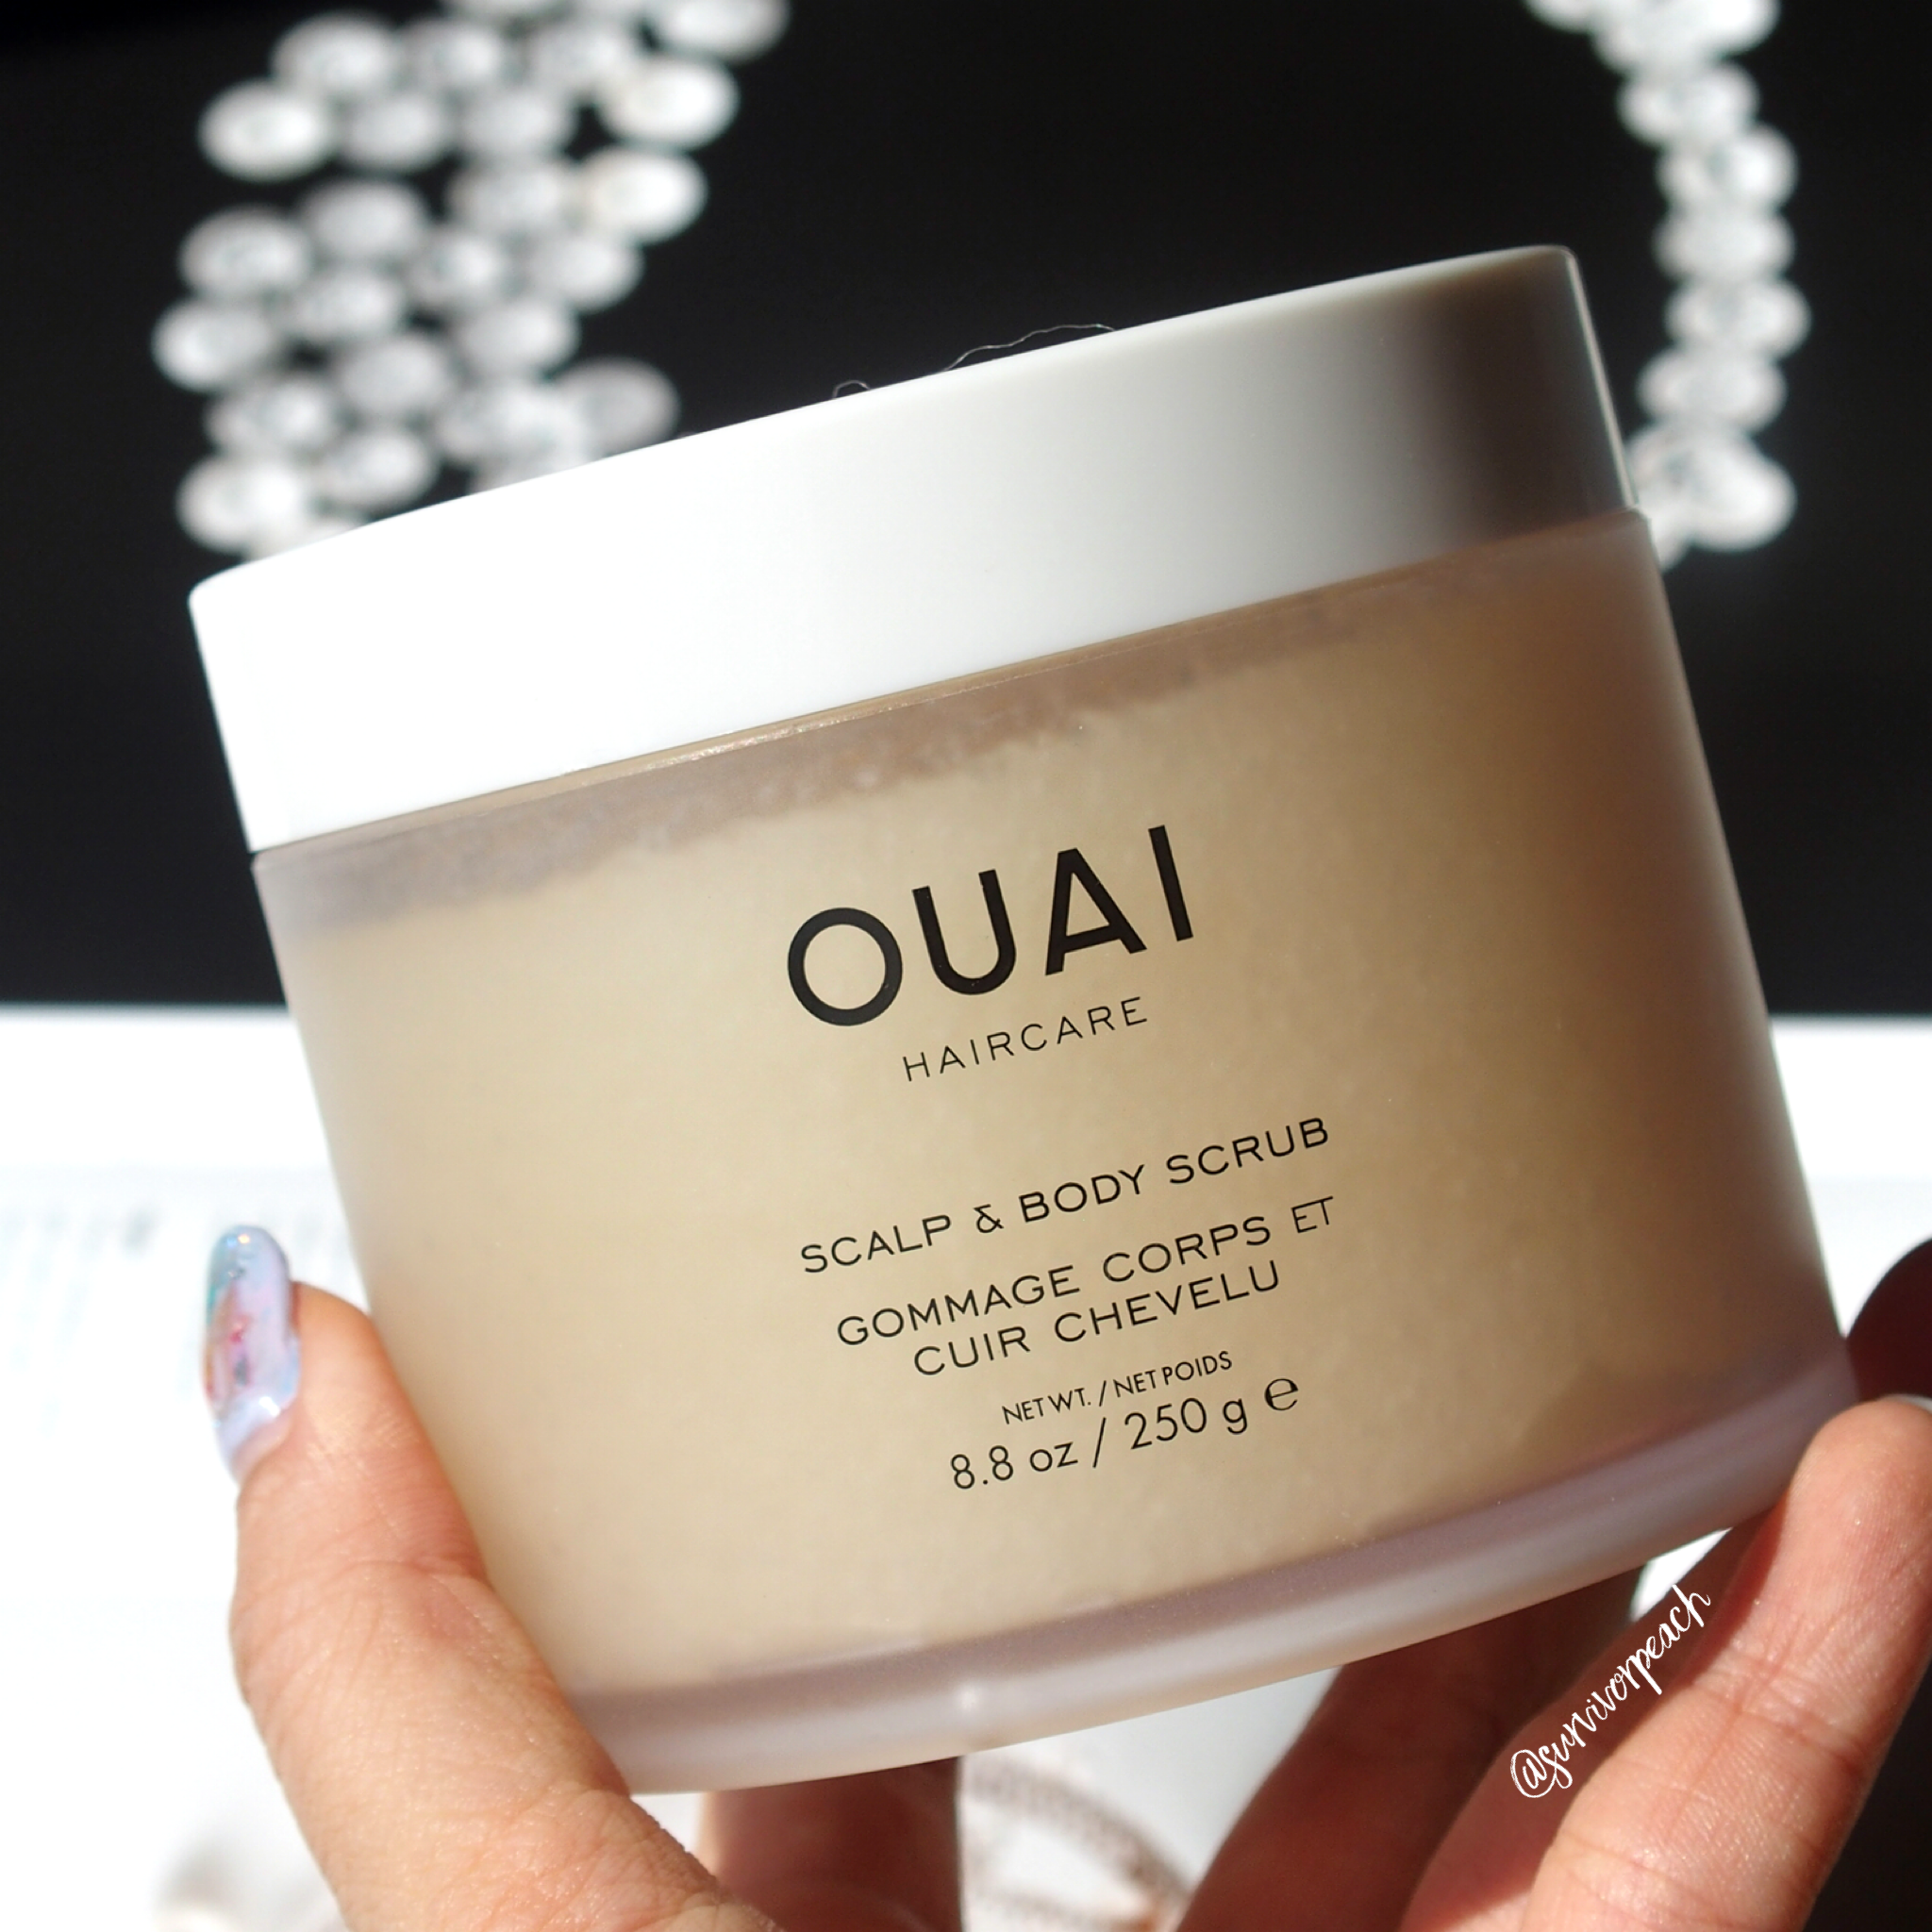 Ouai Scalp & Body Scub